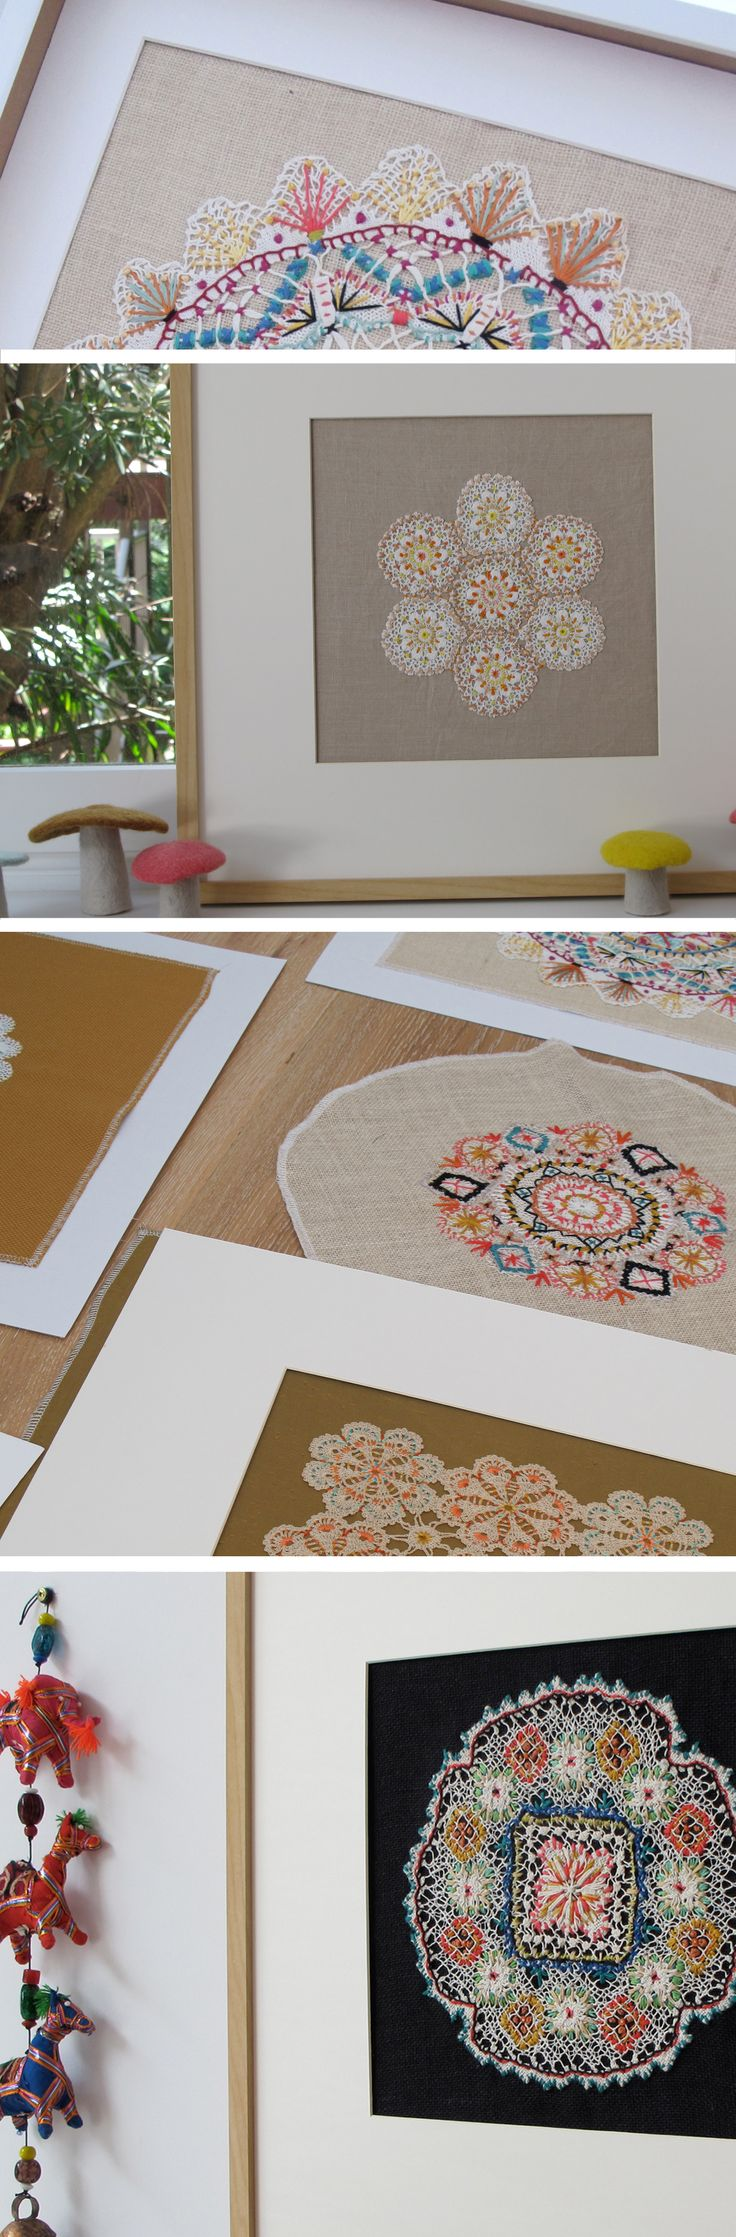 Antique doilies are painstakingly hand embroidered with vintage British and Dutch threads, mounted to hessian, antique linen and vintage silks.